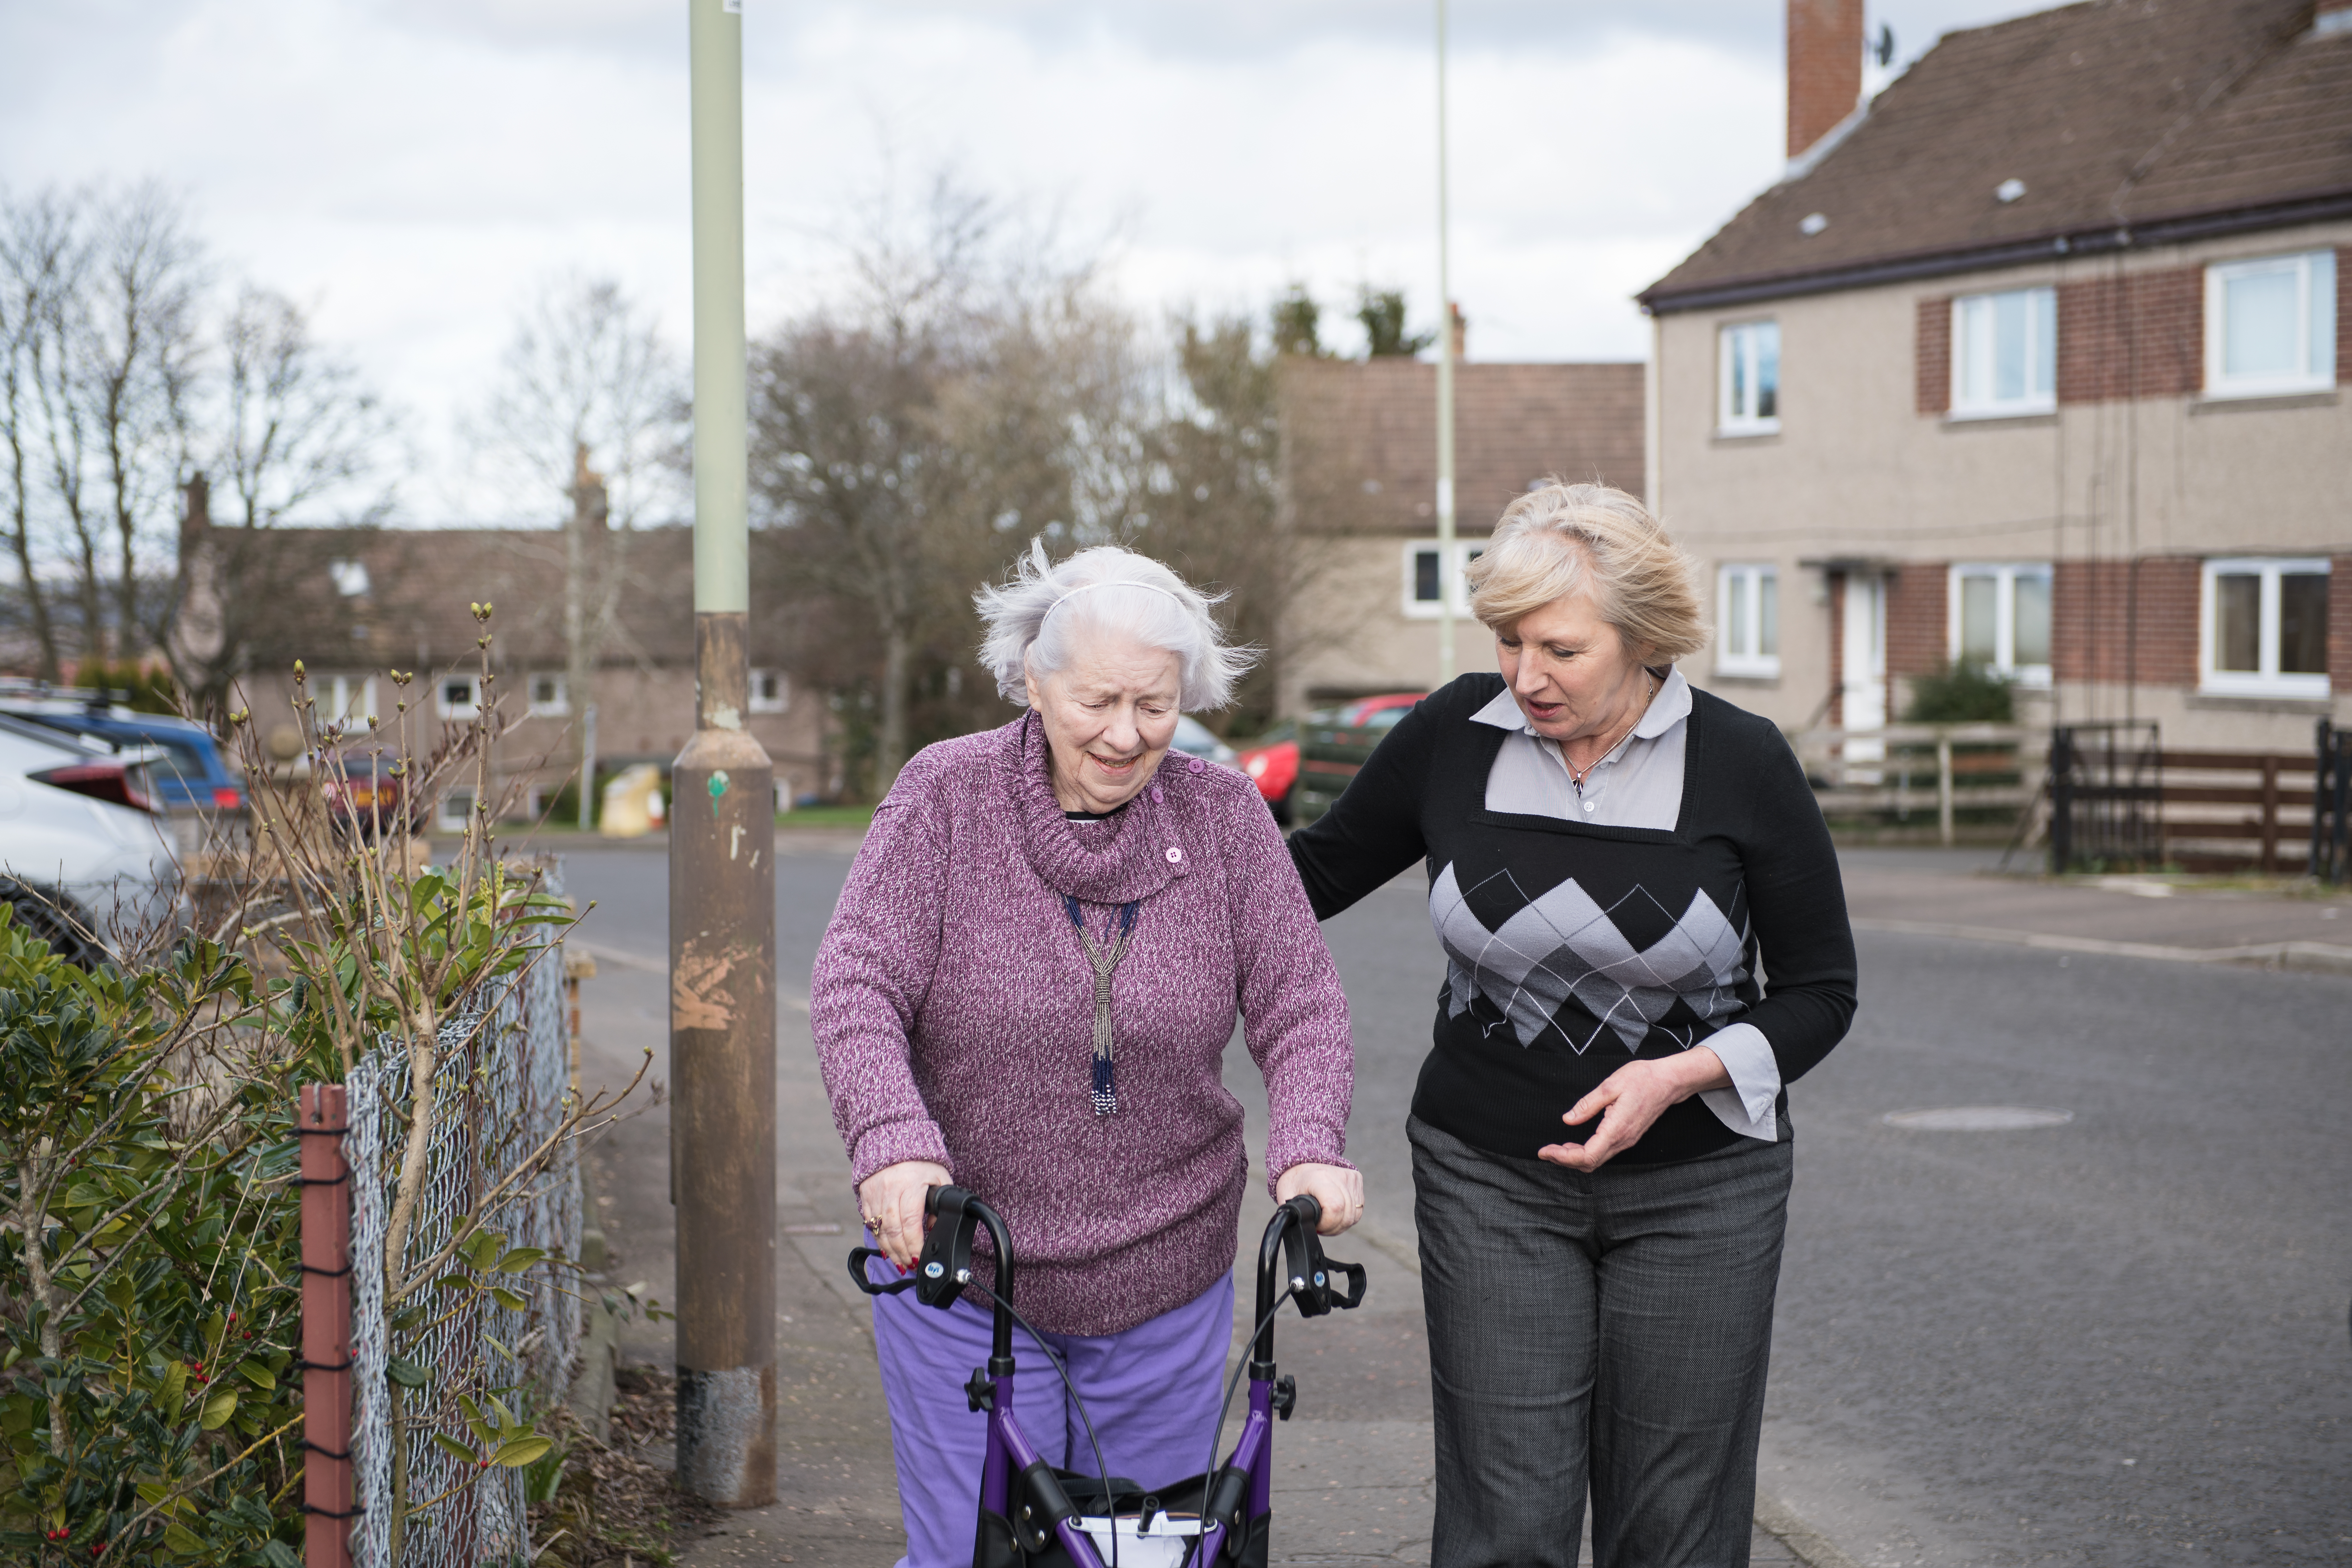 Stroke survive Irene Smeaton with Hazel from the Holistic Rehabilitation Support Service